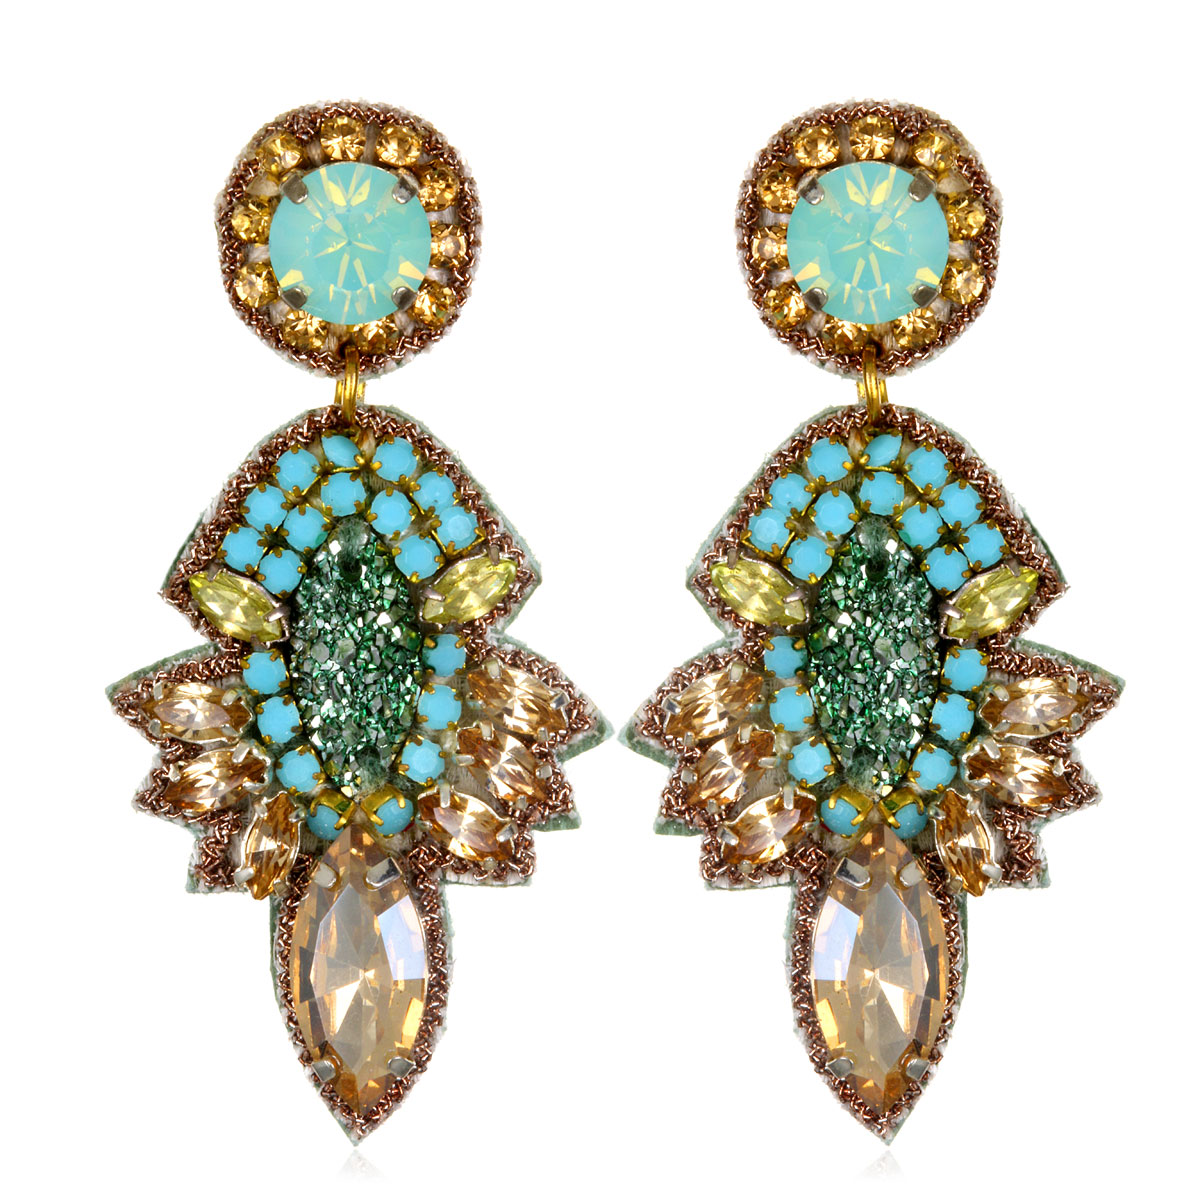 Turquoise Orsay Earrings by SUZANNA DAI